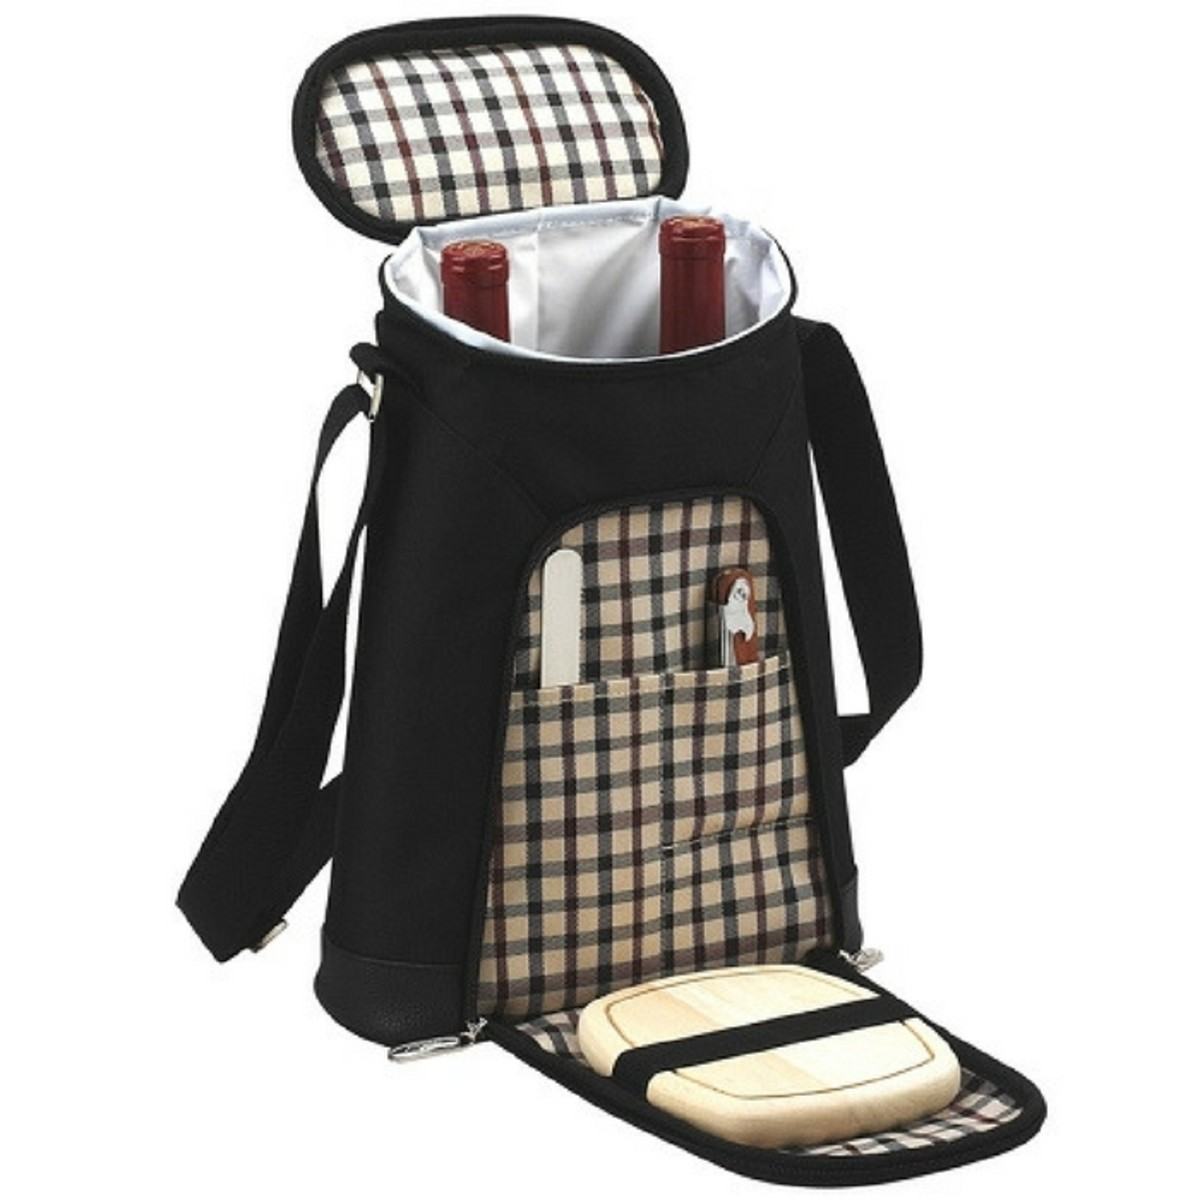 Picnic Wine Carrier